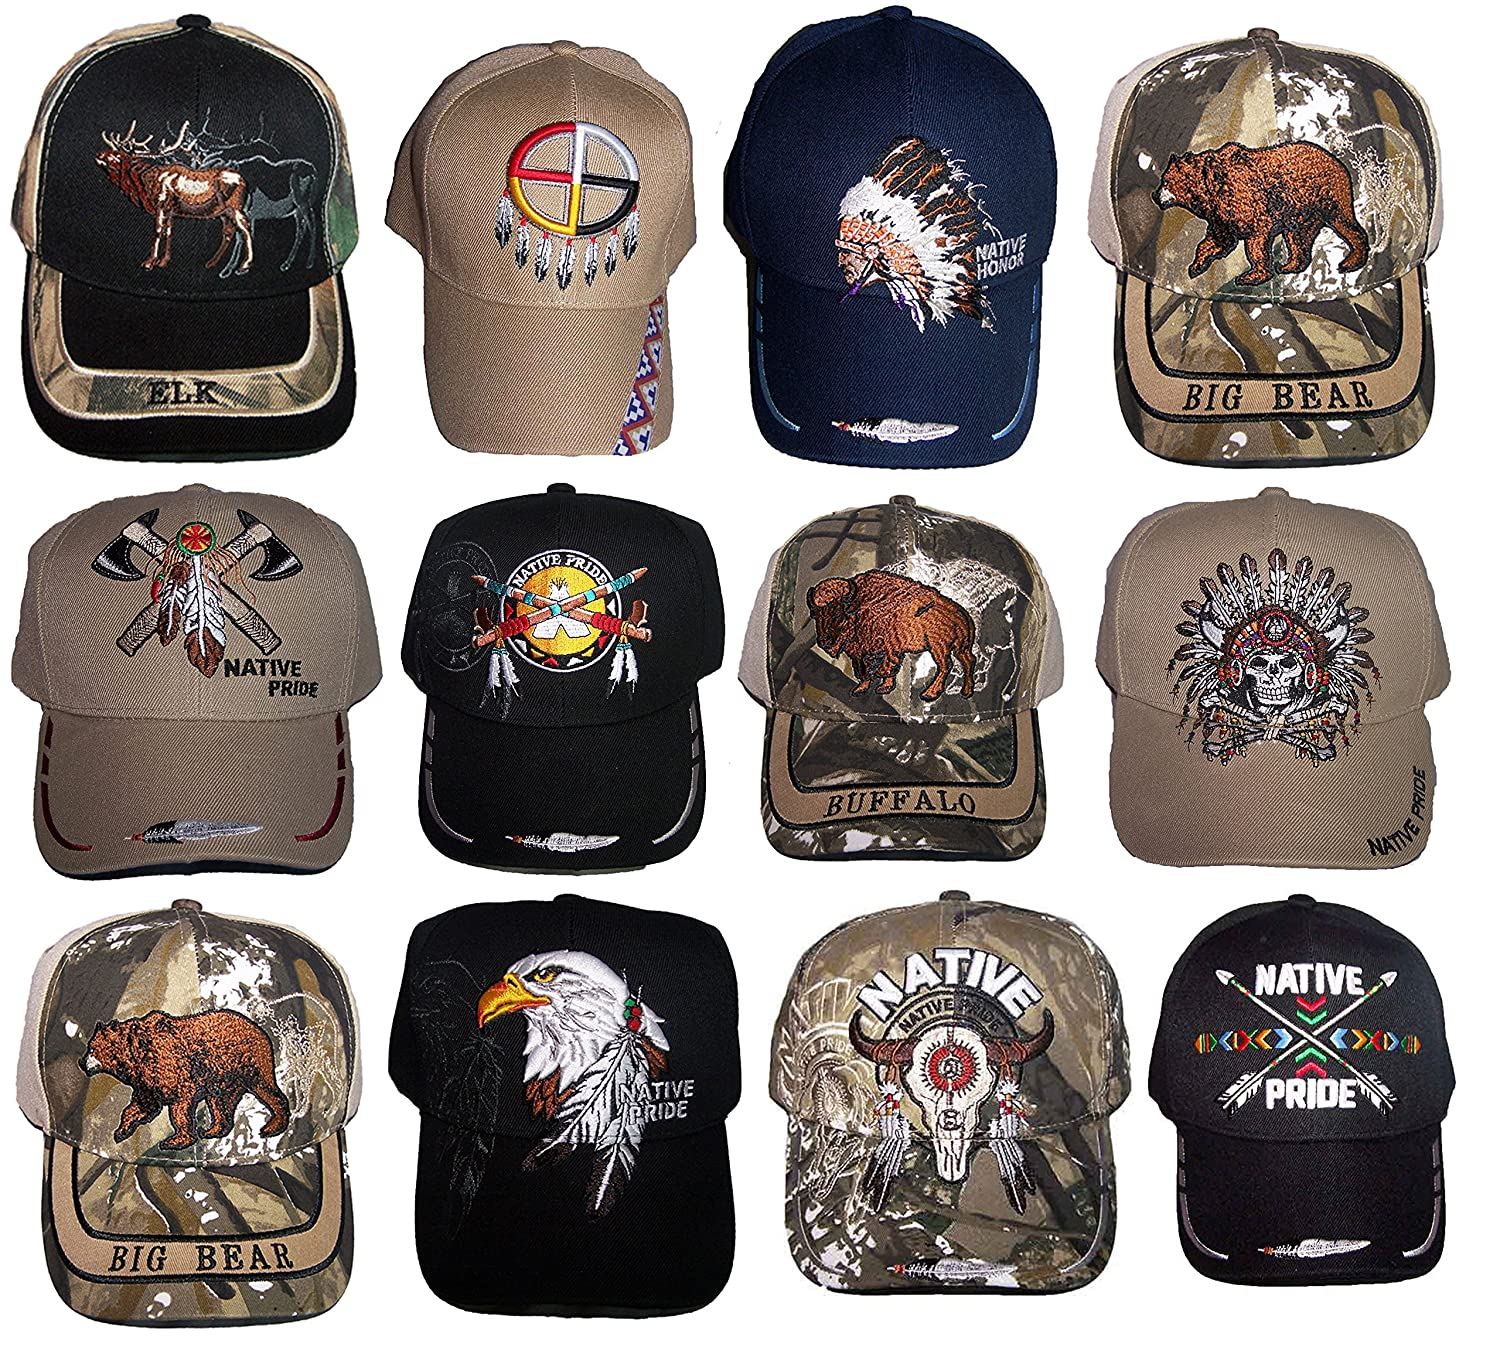 Native Pride Embroidered Baseball Caps Hats - Assorted Styles 12 Pc Pack  (CapNp-12 Z) at Amazon Men s Clothing store  05859224078